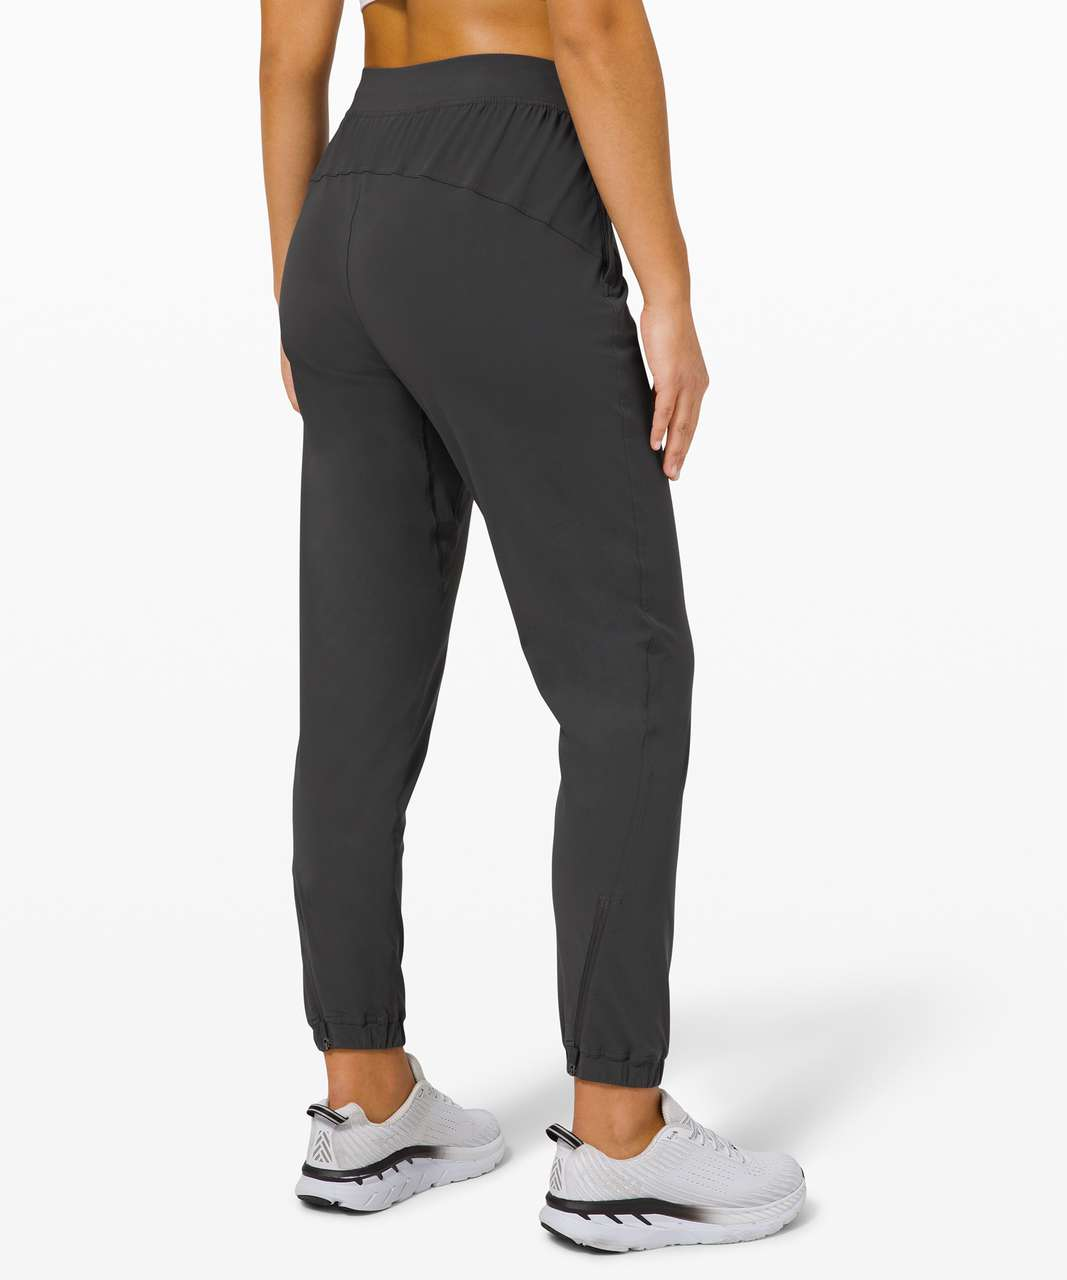 Lululemon Adapted State Jogger - Graphite Grey